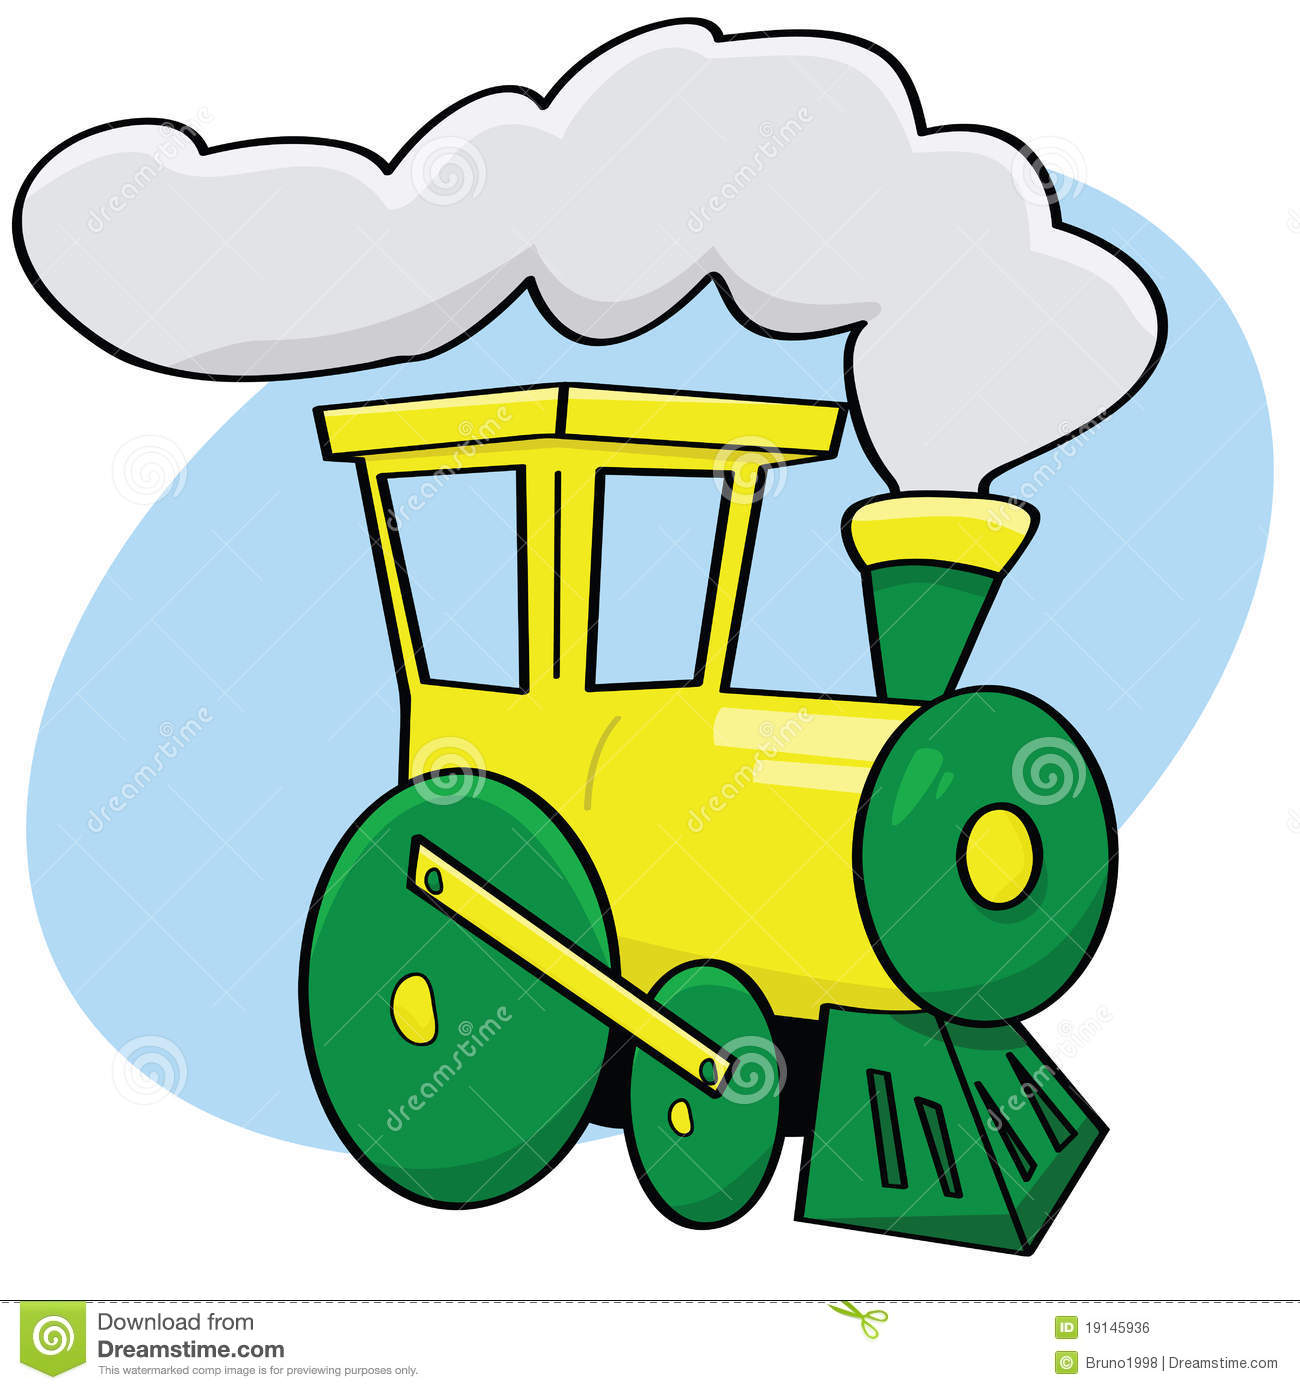 Train de dessin anim image libre de droits image 19145936 - Train dessin anime chuggington ...